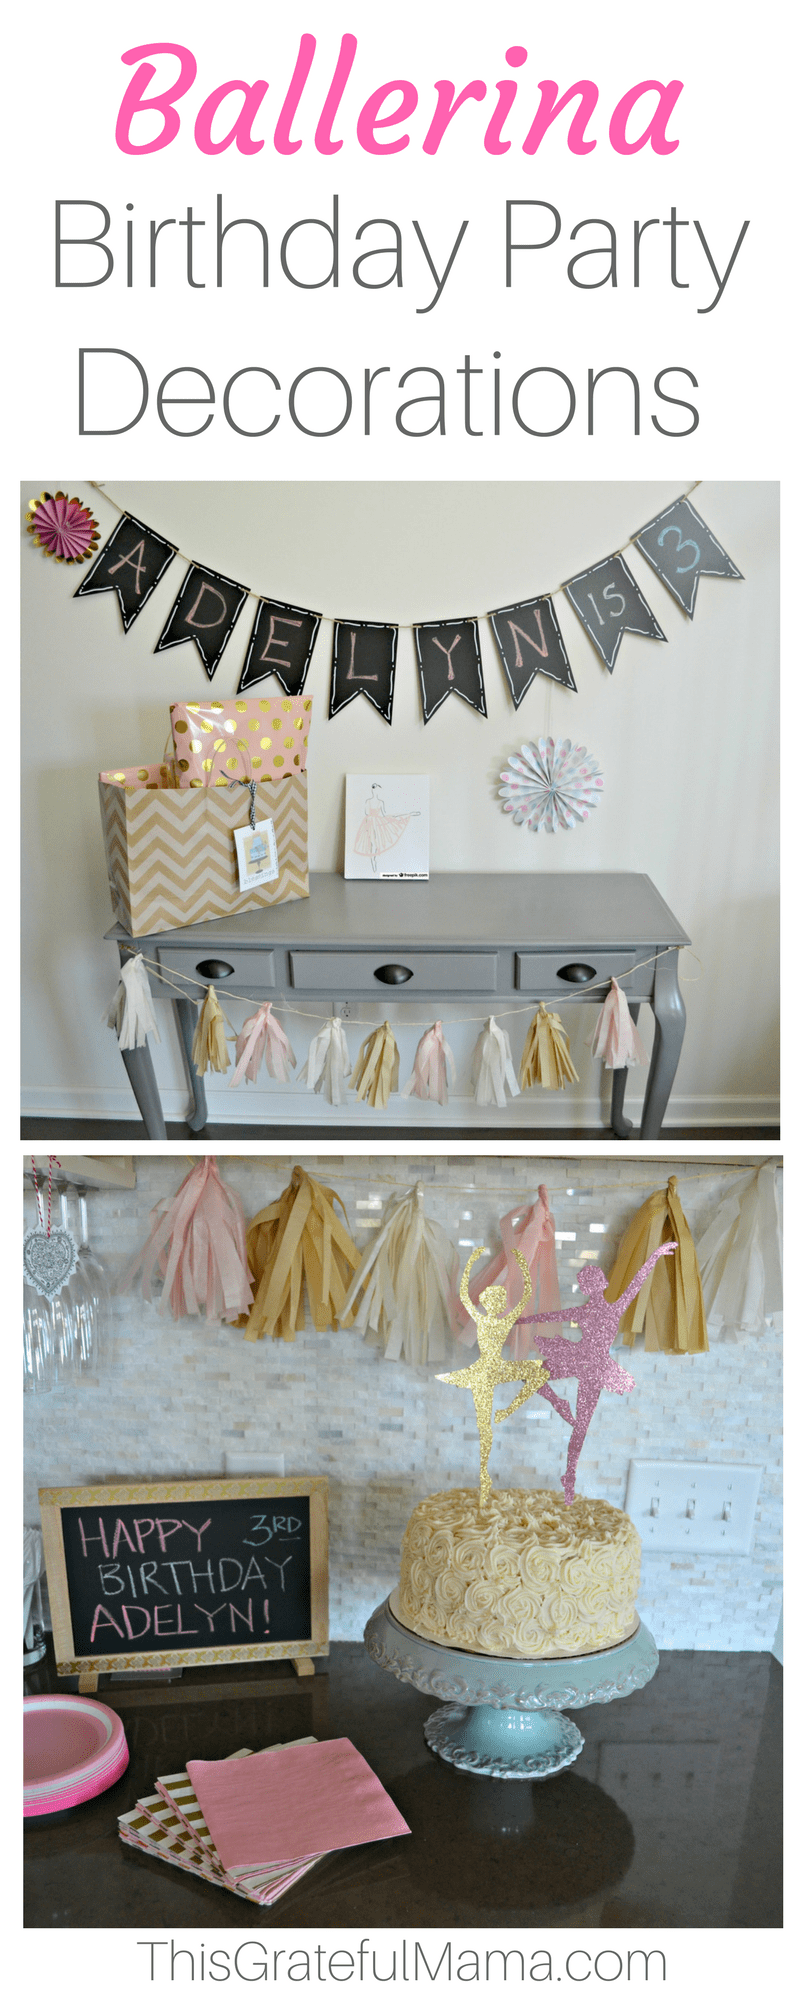 A Ballerina Birthday Party - Birthday Party decorations for a Ballerina theme. Great for a 3 year old birthday celebration. Pink and gold tassle tissue paper garland, photo birthday banner, ballerina decorations and ballerina birthday cake. | thisgratefulmama.com #ballerina #birthday #girlbirthday #birthdayparty #party #partydecorations #birthdaydecorations #garland #ballerinacake #3yearoldbirthday #3rdbirthday #photobanner #bday